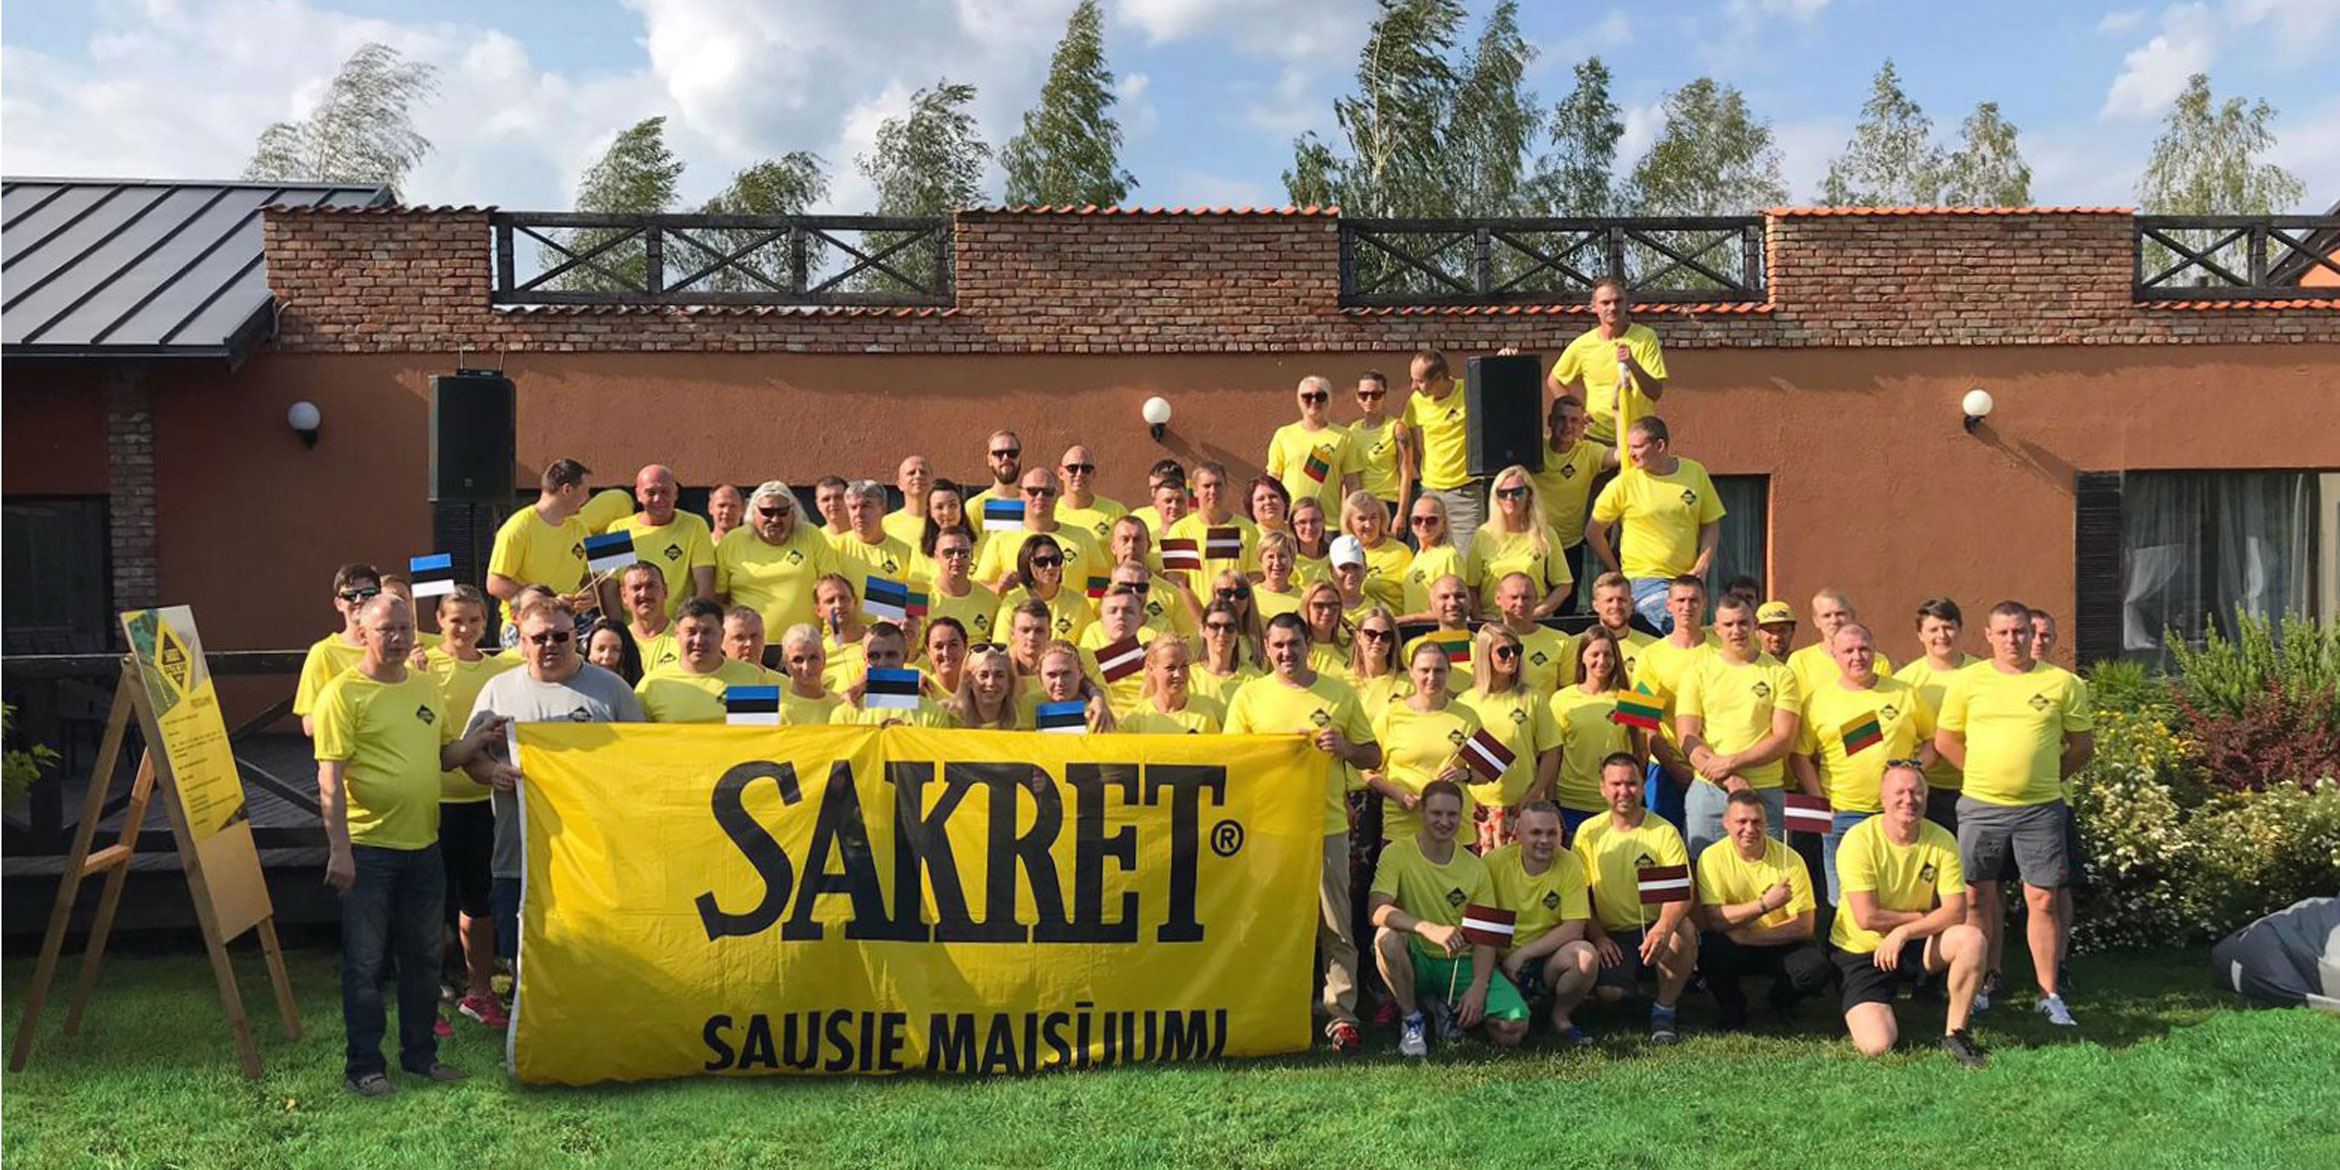 SAKRET employees group shot with SAKRET banner